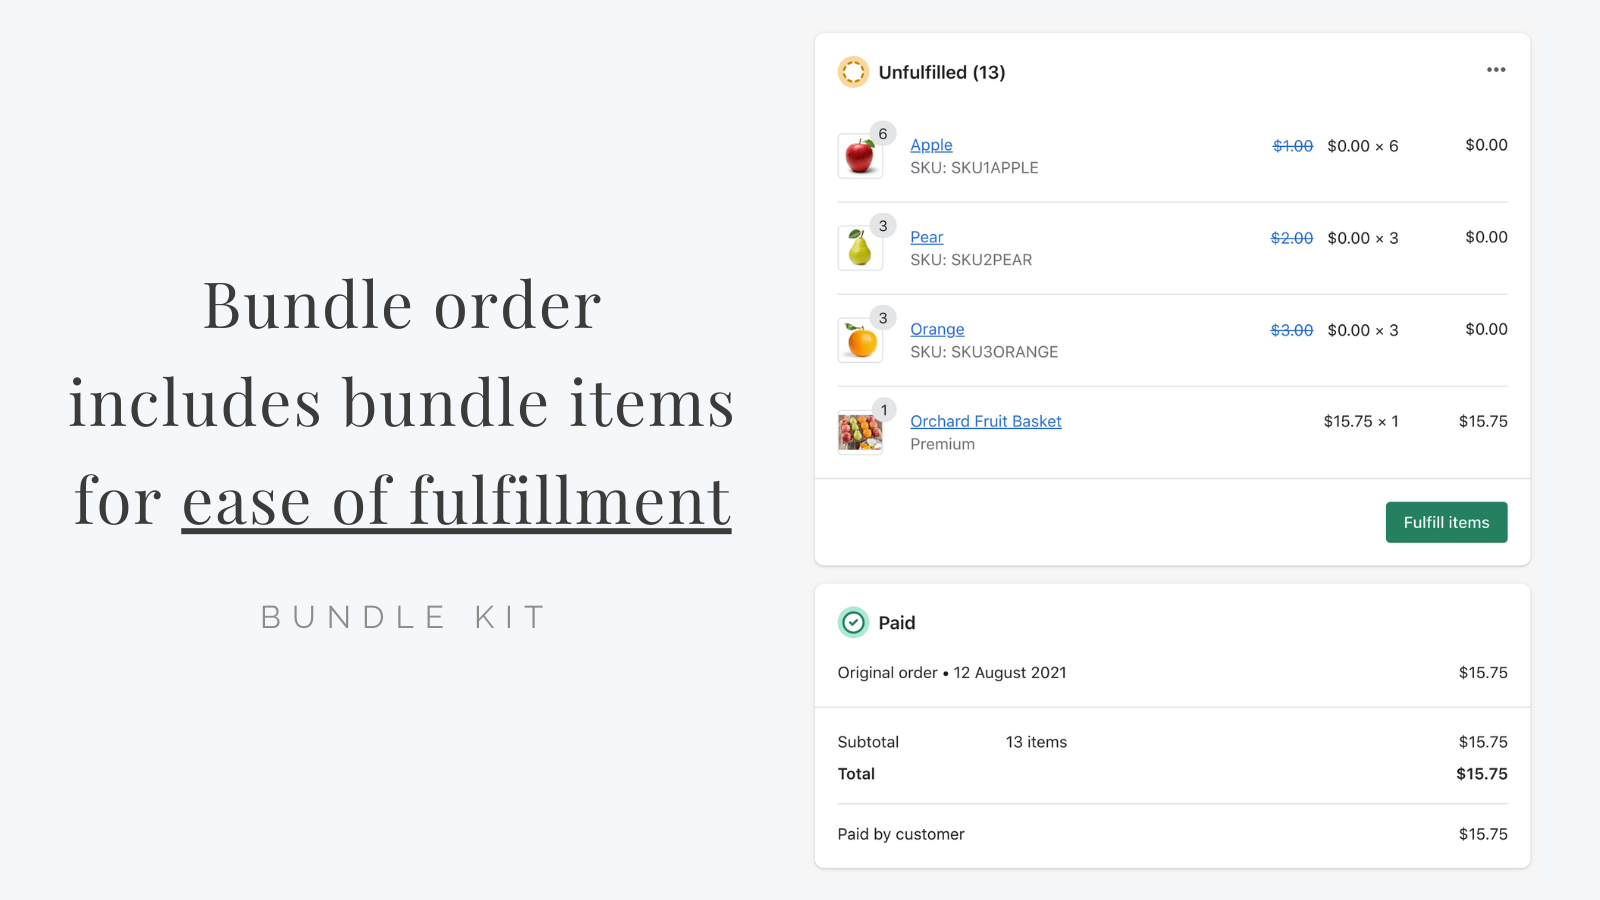 Bundle order includes bundle items for ease of fulfillment